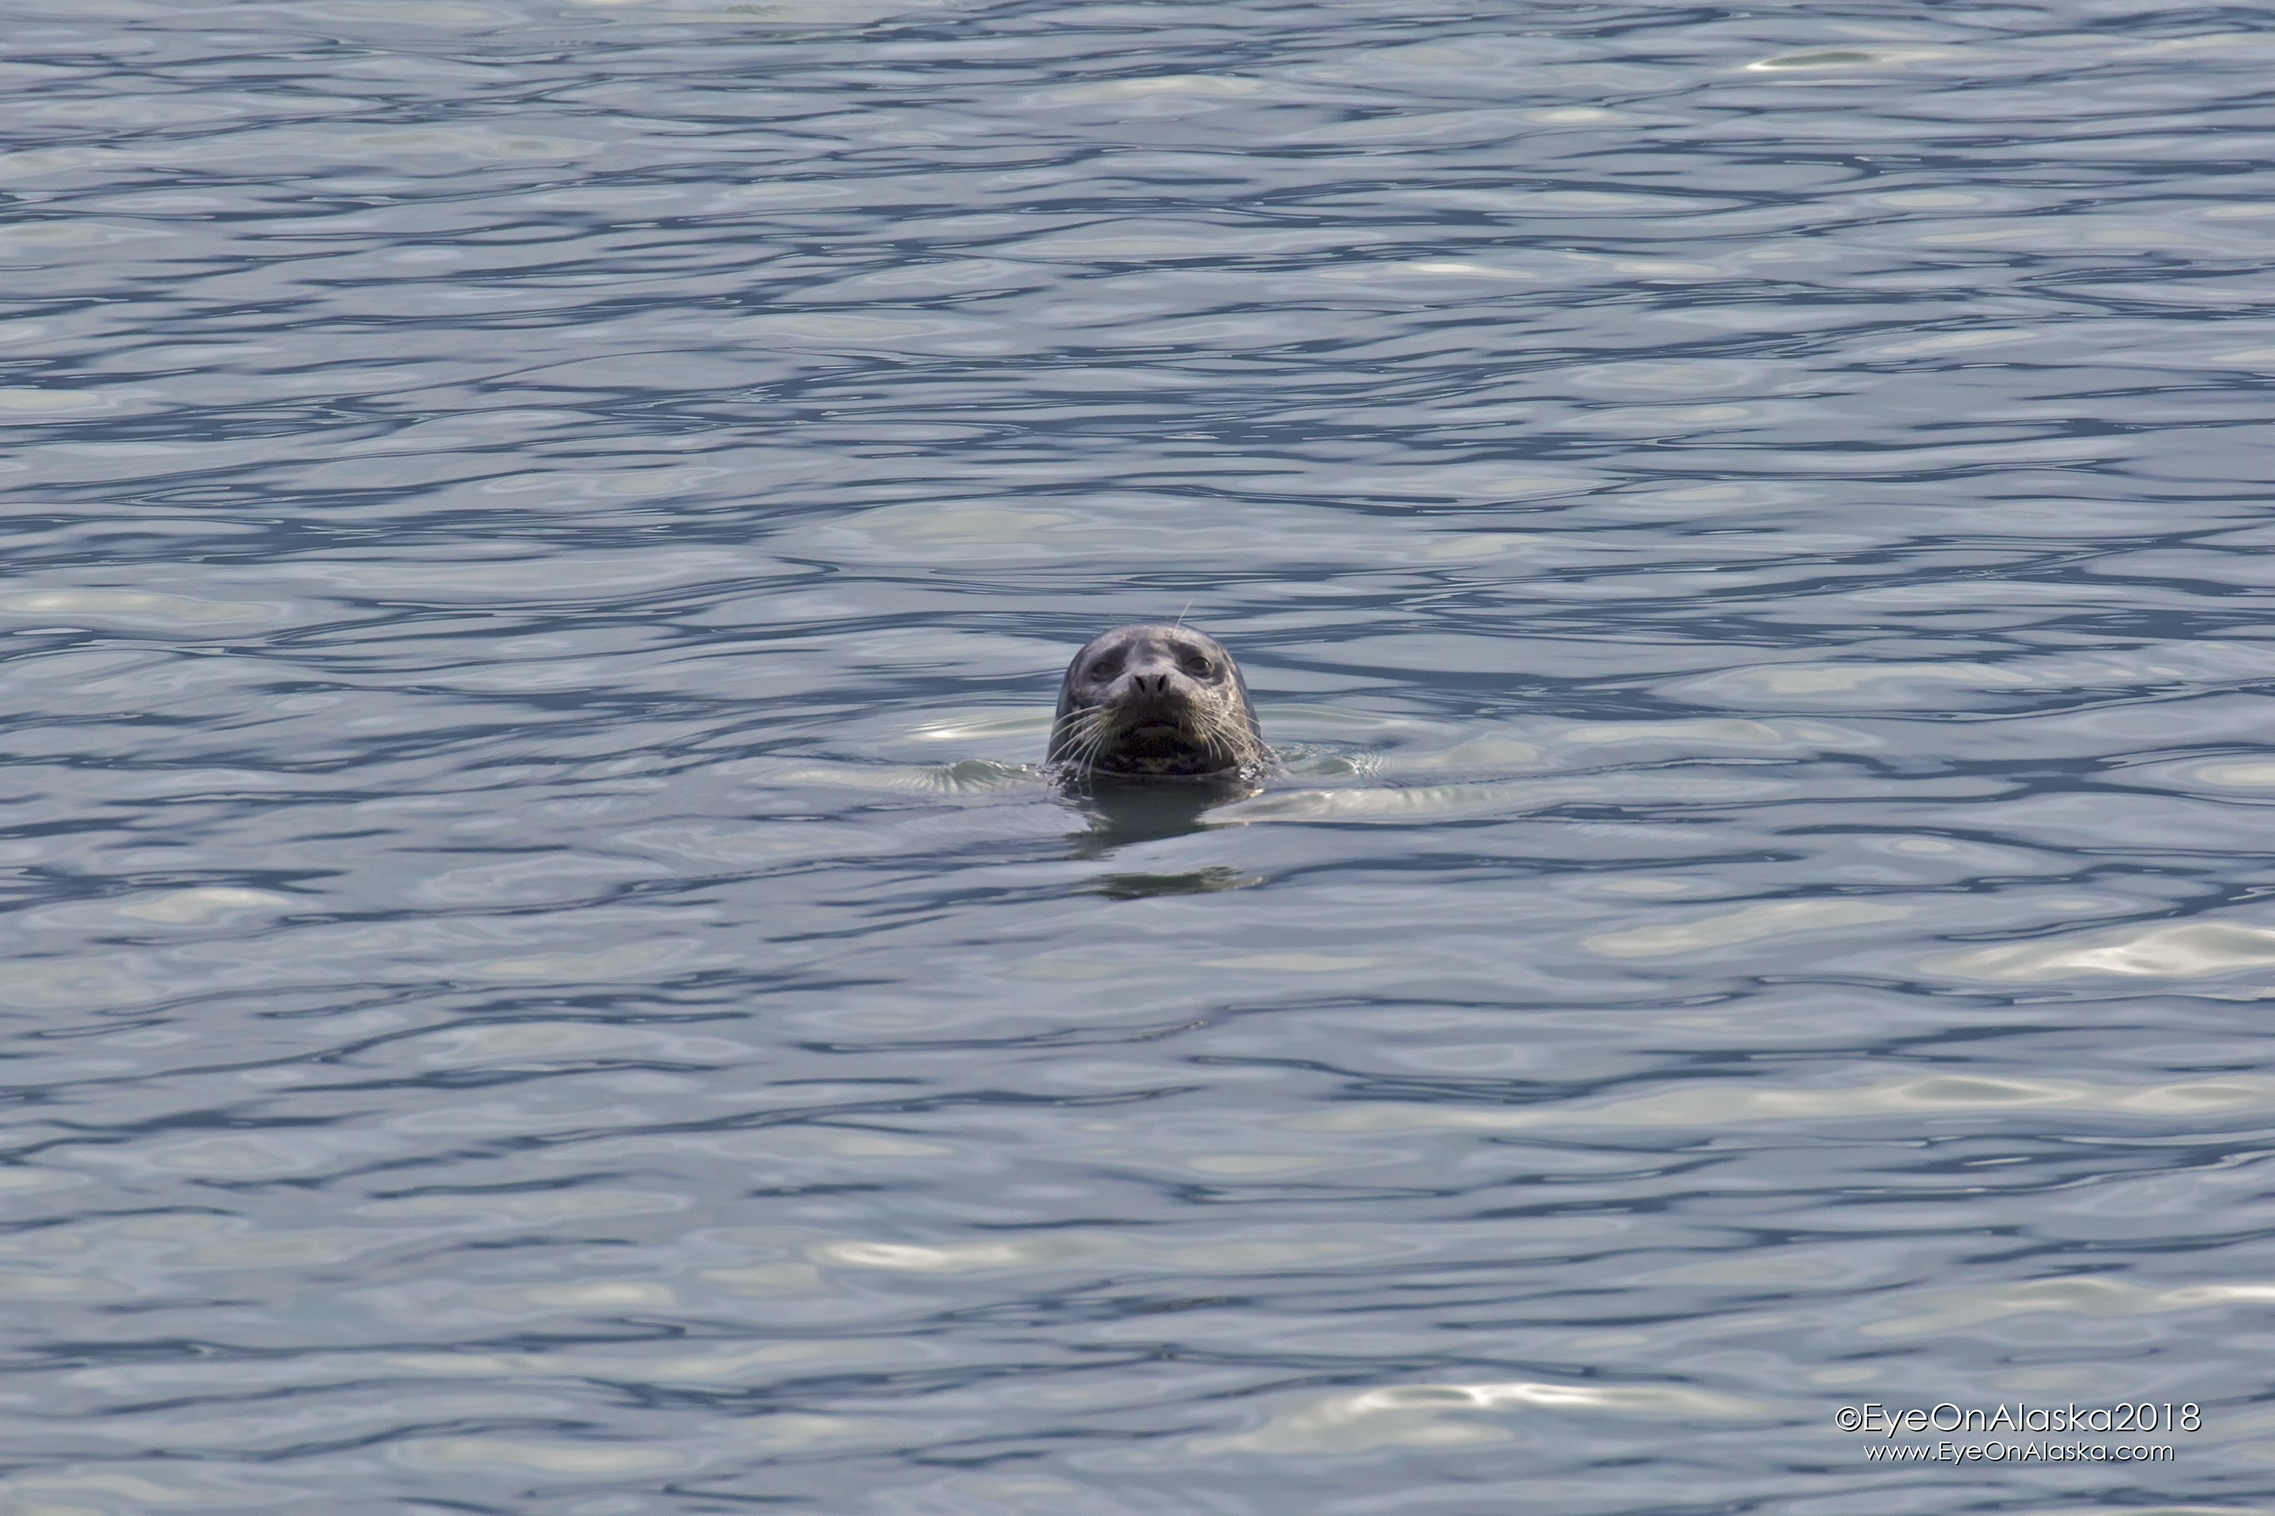 Curious Harbor Seal came by to check us out.